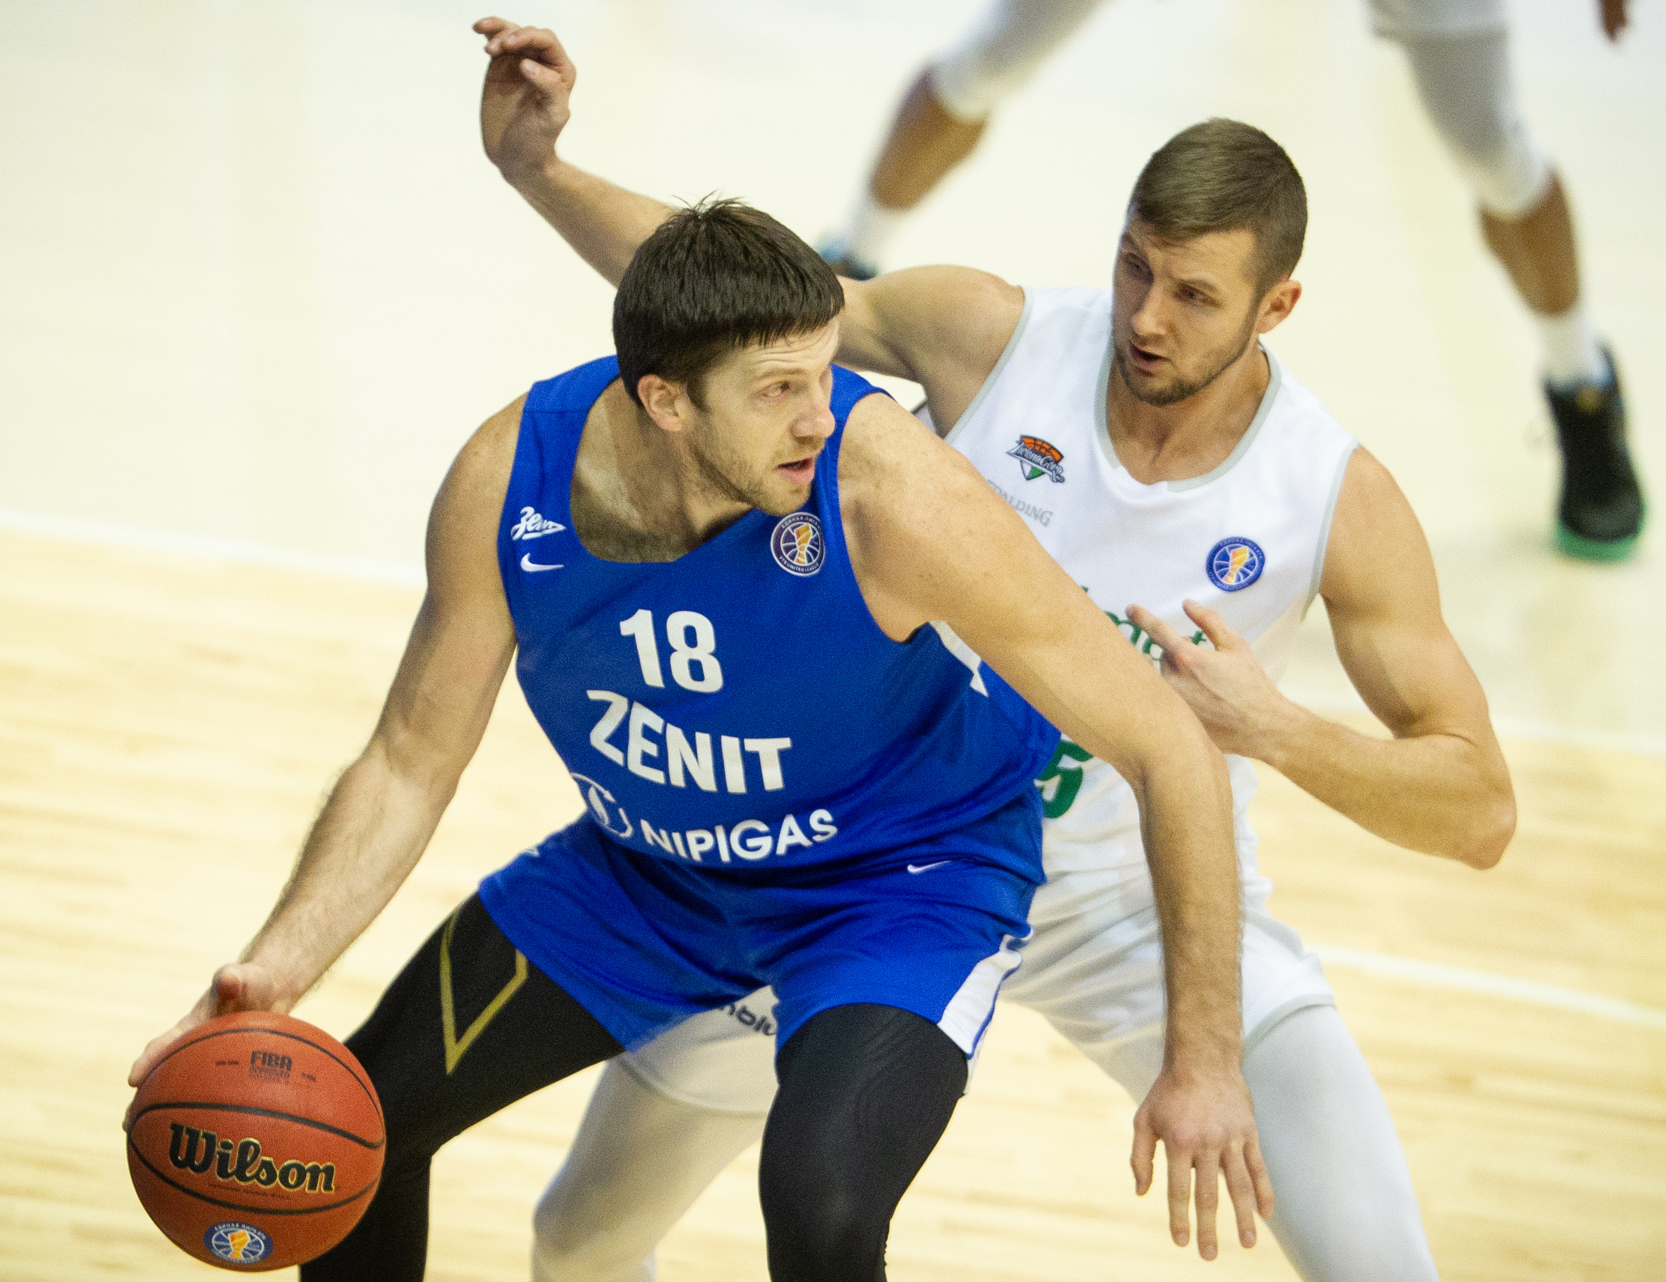 Zenit Wins 5th Straight, Bounces Zielona Gora From Top 8